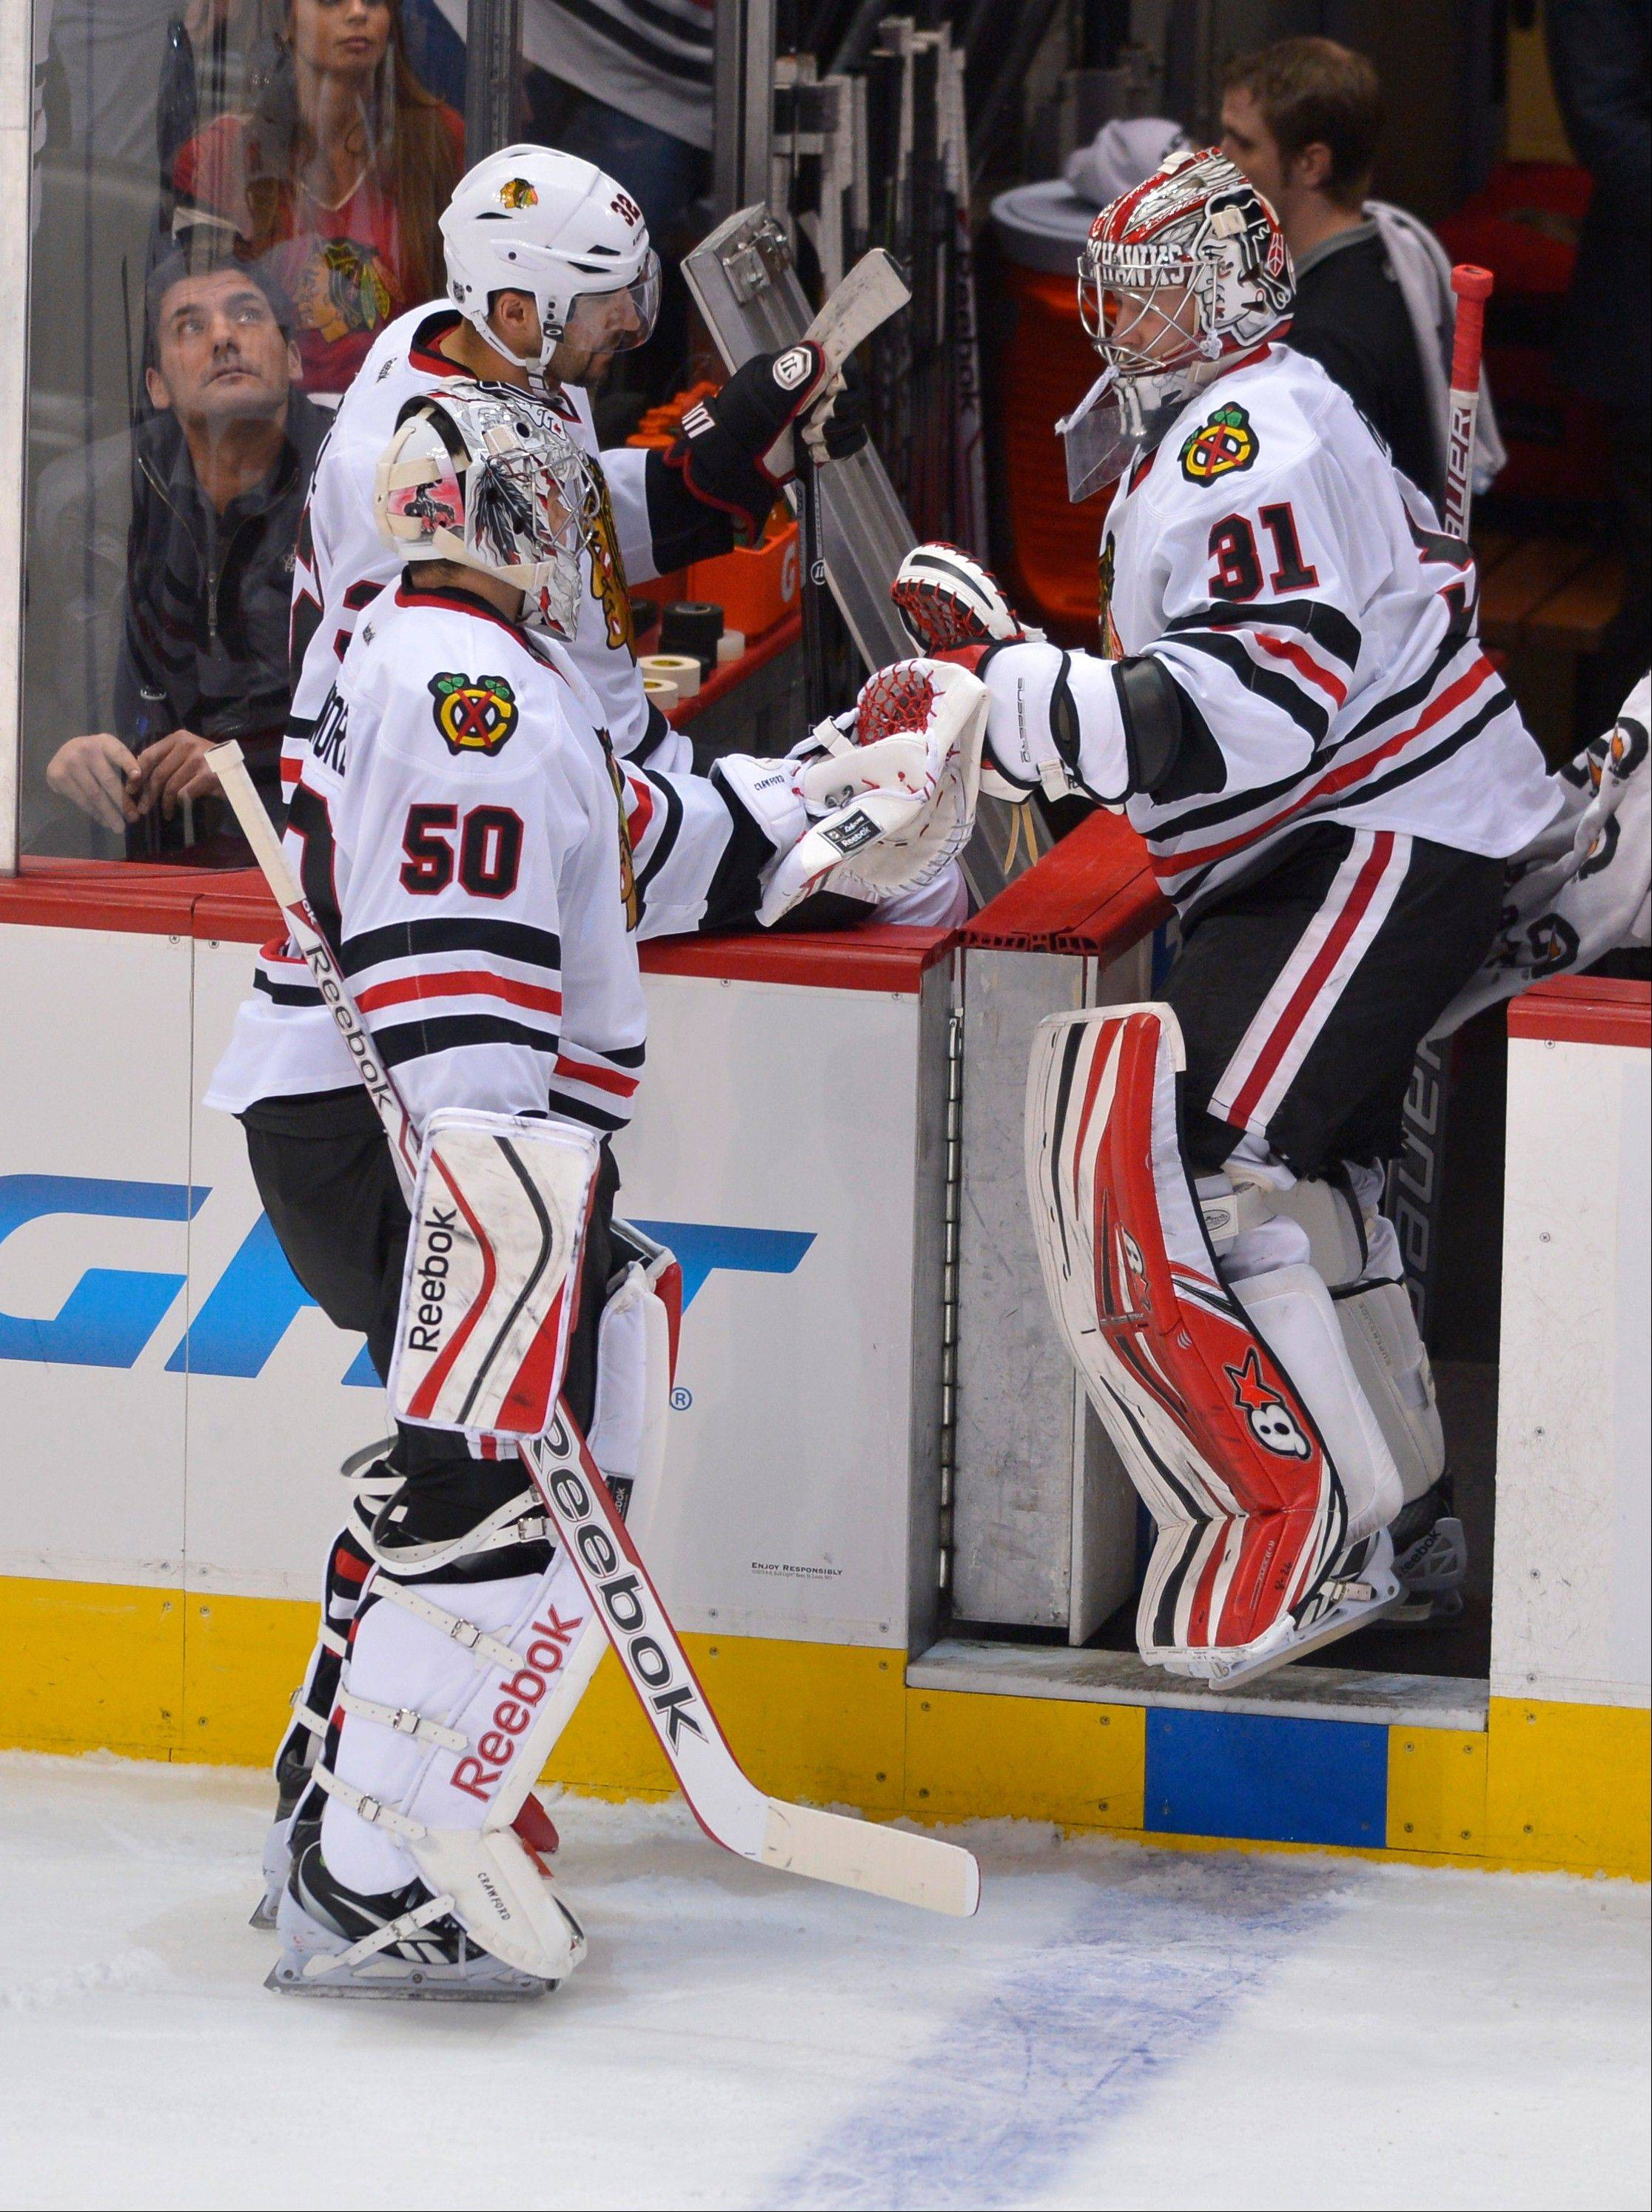 Blackhawks goalie Antti Raanta (31) replaces Corey Crawford (50) after Crawford gave up 3 goals to the Avalanche during the first period Tuesday night.